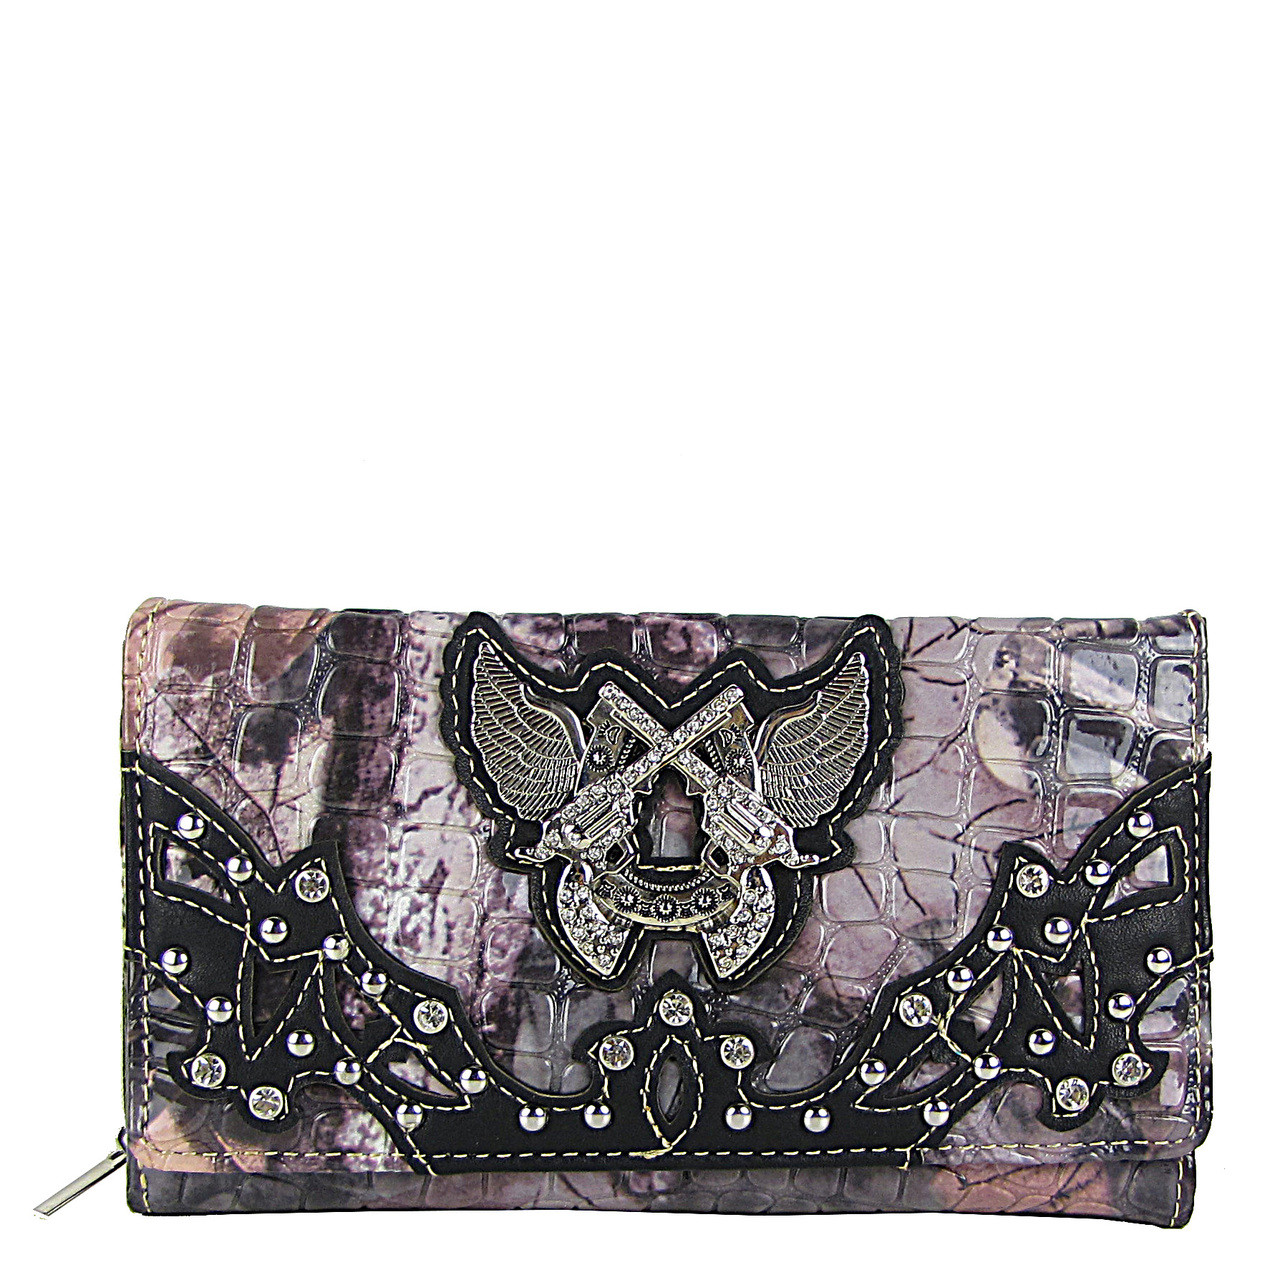 BLACK CAMO RHINESTONE HORSESHOE WITH WINGS AND PISTOLS LOOK CHEKCBOOK WALLET CB1-1279BLK